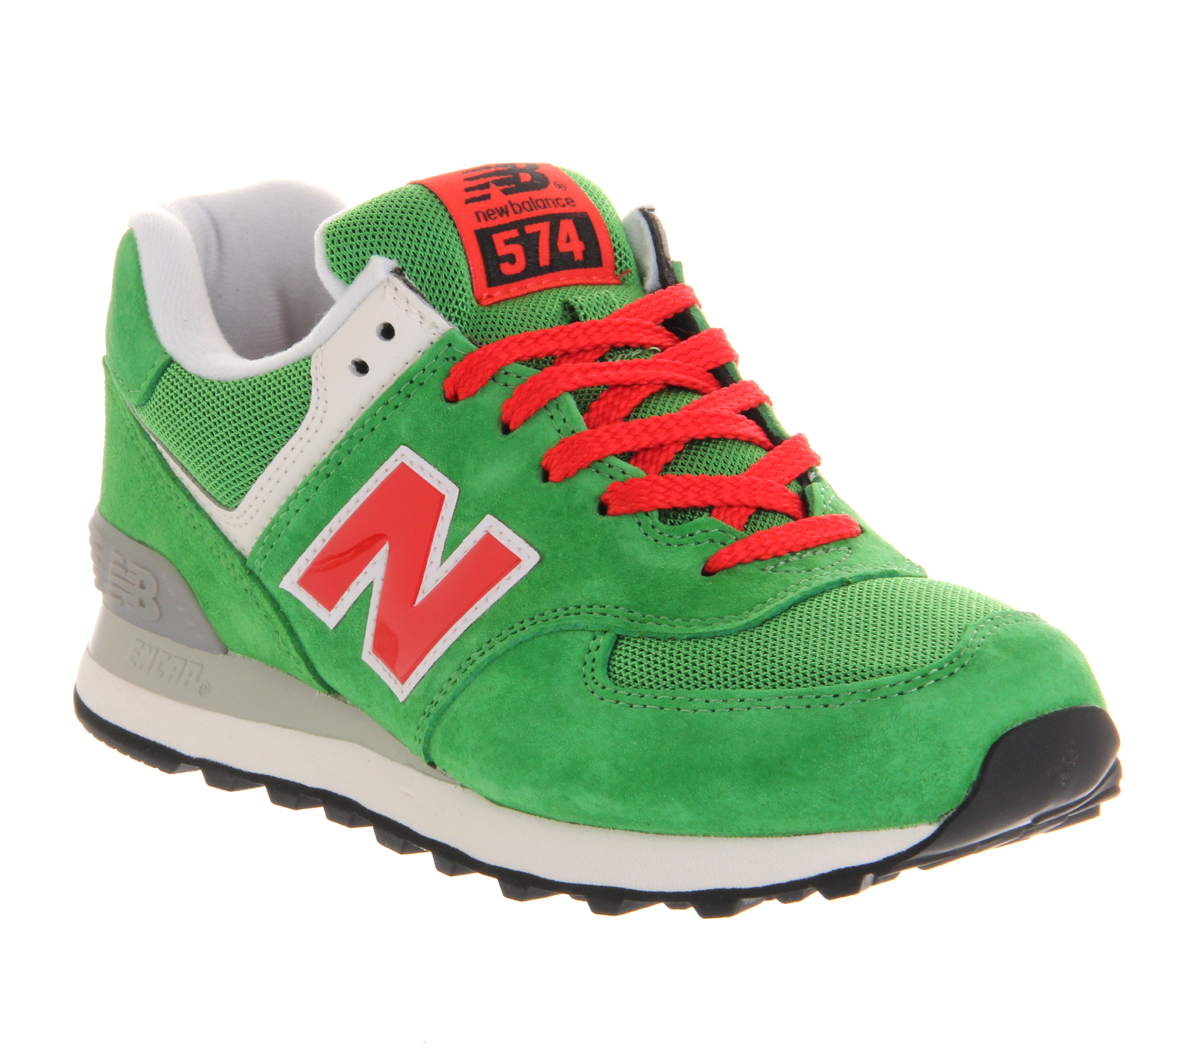 new balance new balance m574 green red exclusive trainers shoes ebay. Black Bedroom Furniture Sets. Home Design Ideas